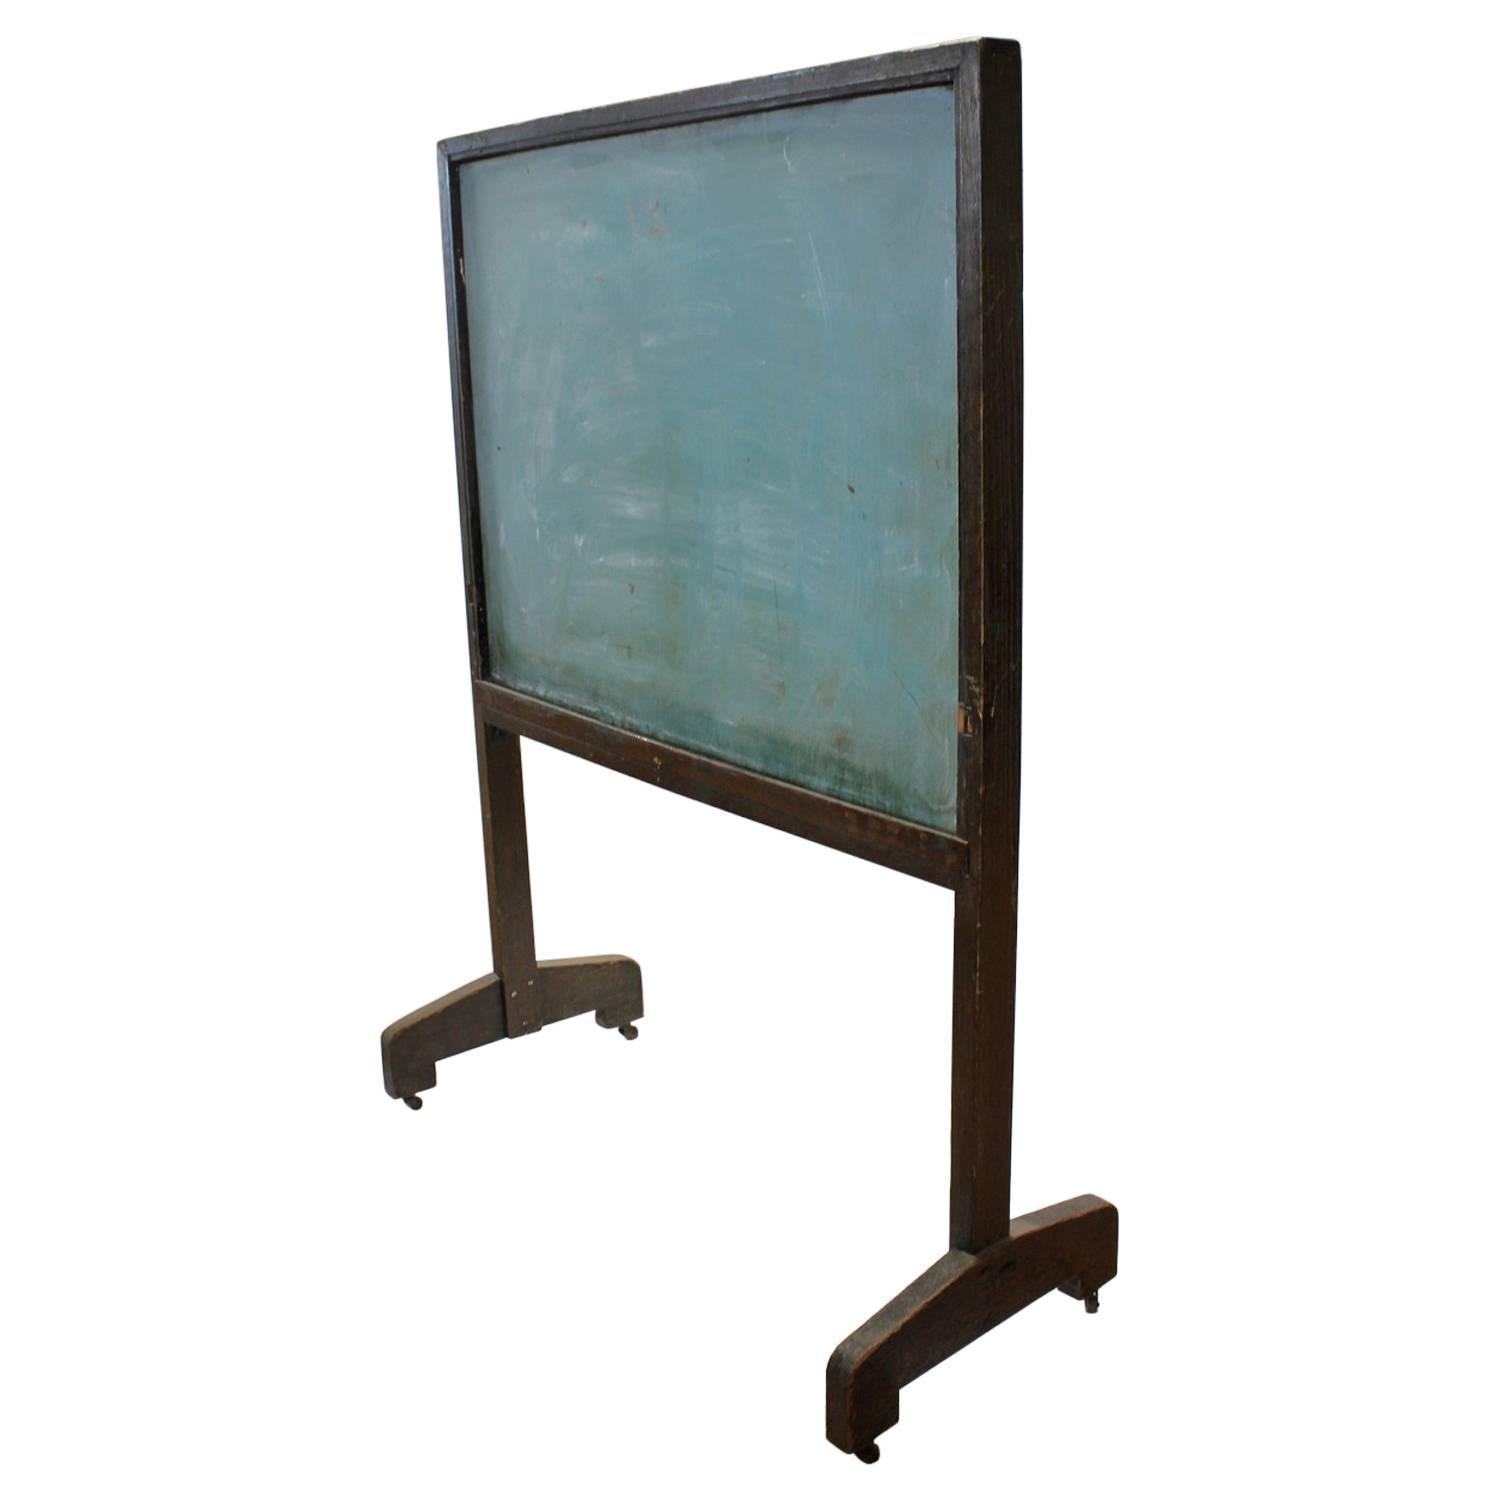 antique american school floor double sided chalkboard With parquet double face